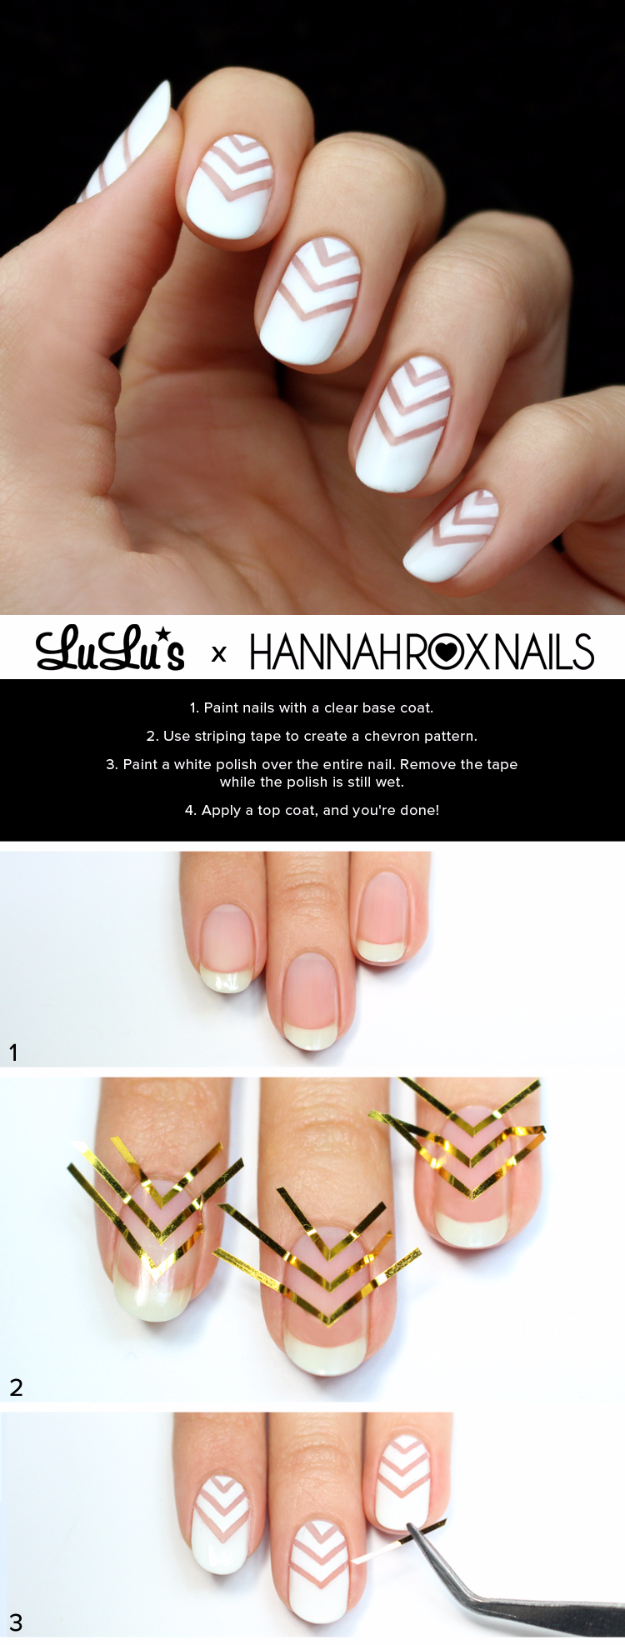 Awesome Nail Art Patterns And Ideas - White Chevron Negative Space Tutorial - Step by Step DIY Nail Design Tutorials for Simple Art, Tribal Prints, Best Black and White Manicures. Easy and Fun Colors, Shapes and Designs for Your Nails